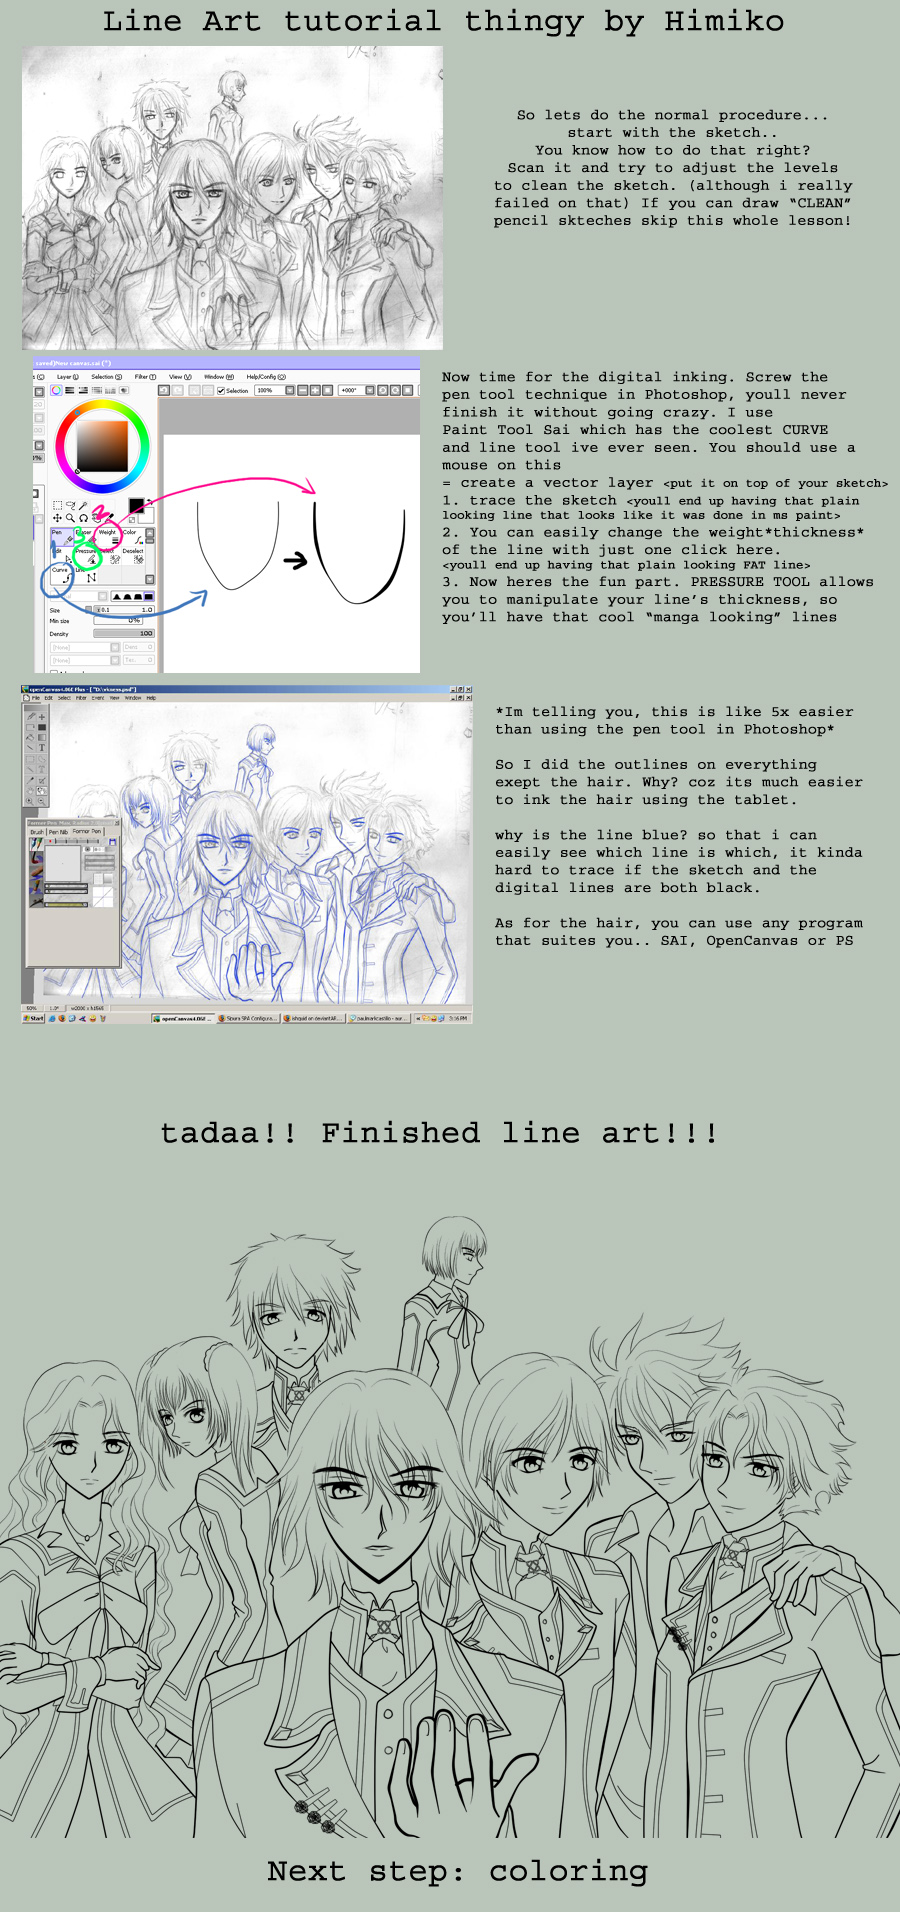 Line art tutorial in sai by himiko on deviantart baditri Choice Image